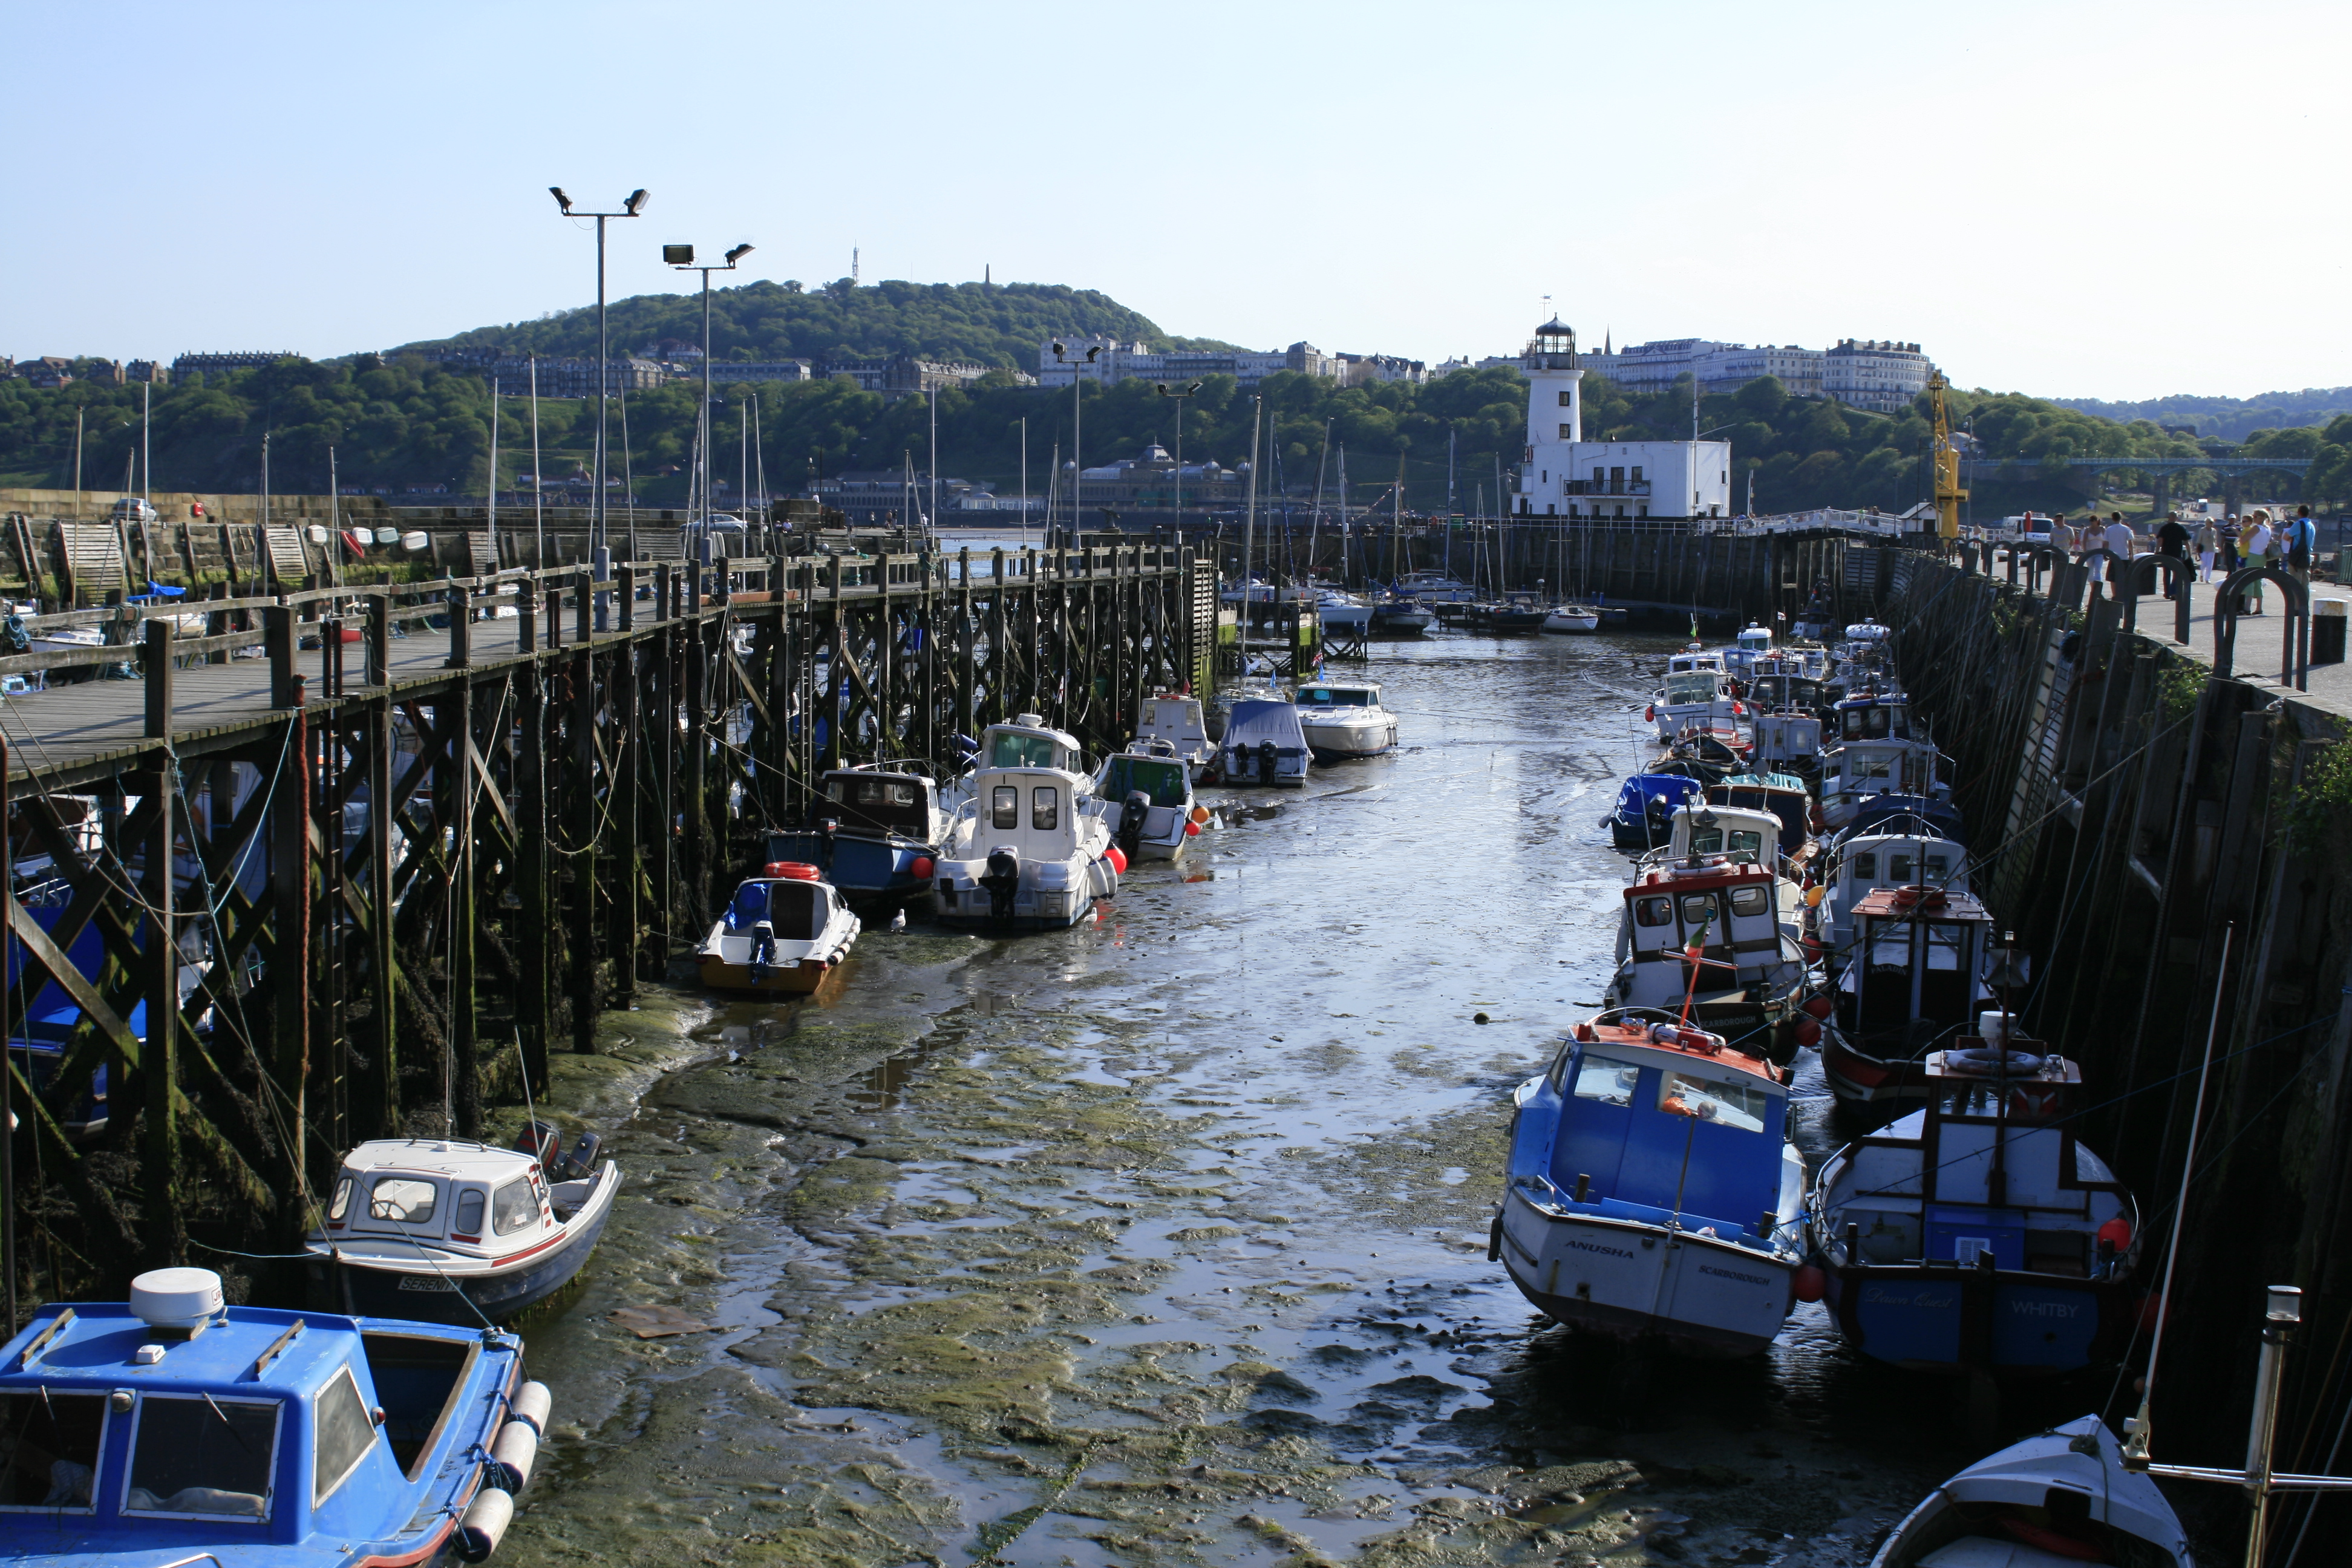 Low Tide in Scarborough, Boats, Harbour, Low, Tide, HQ Photo